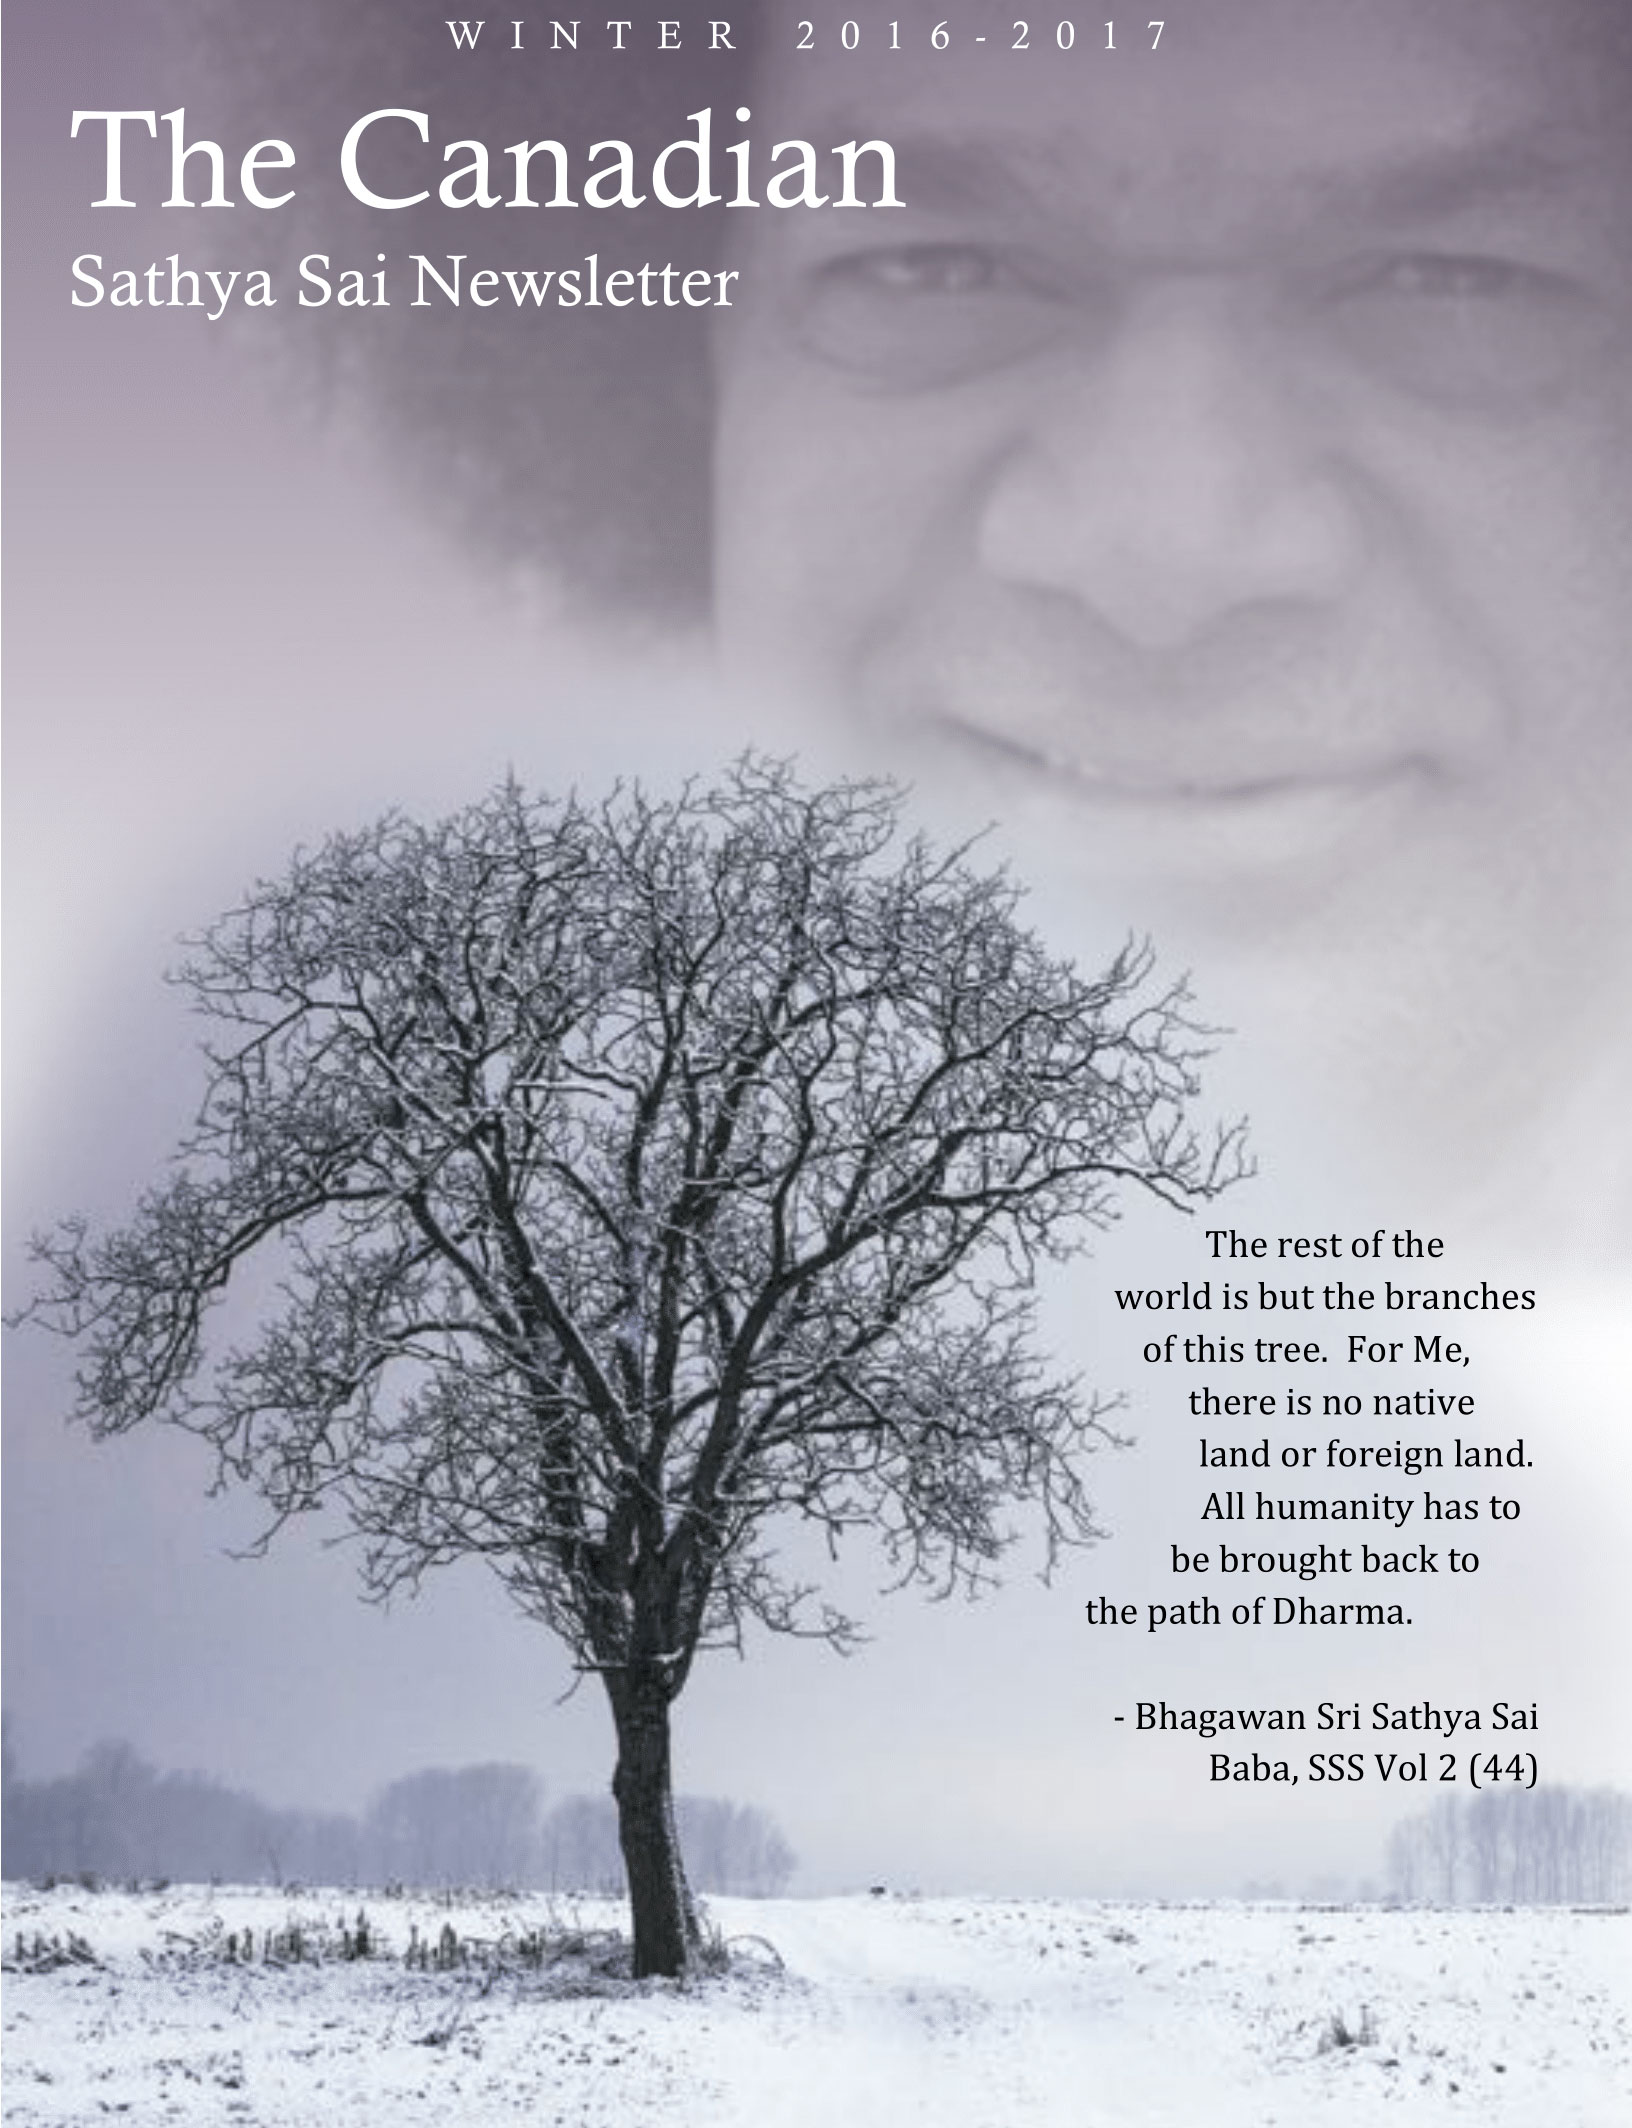 The Canadian Sathya Sai Magazine - Winter 2016-2017